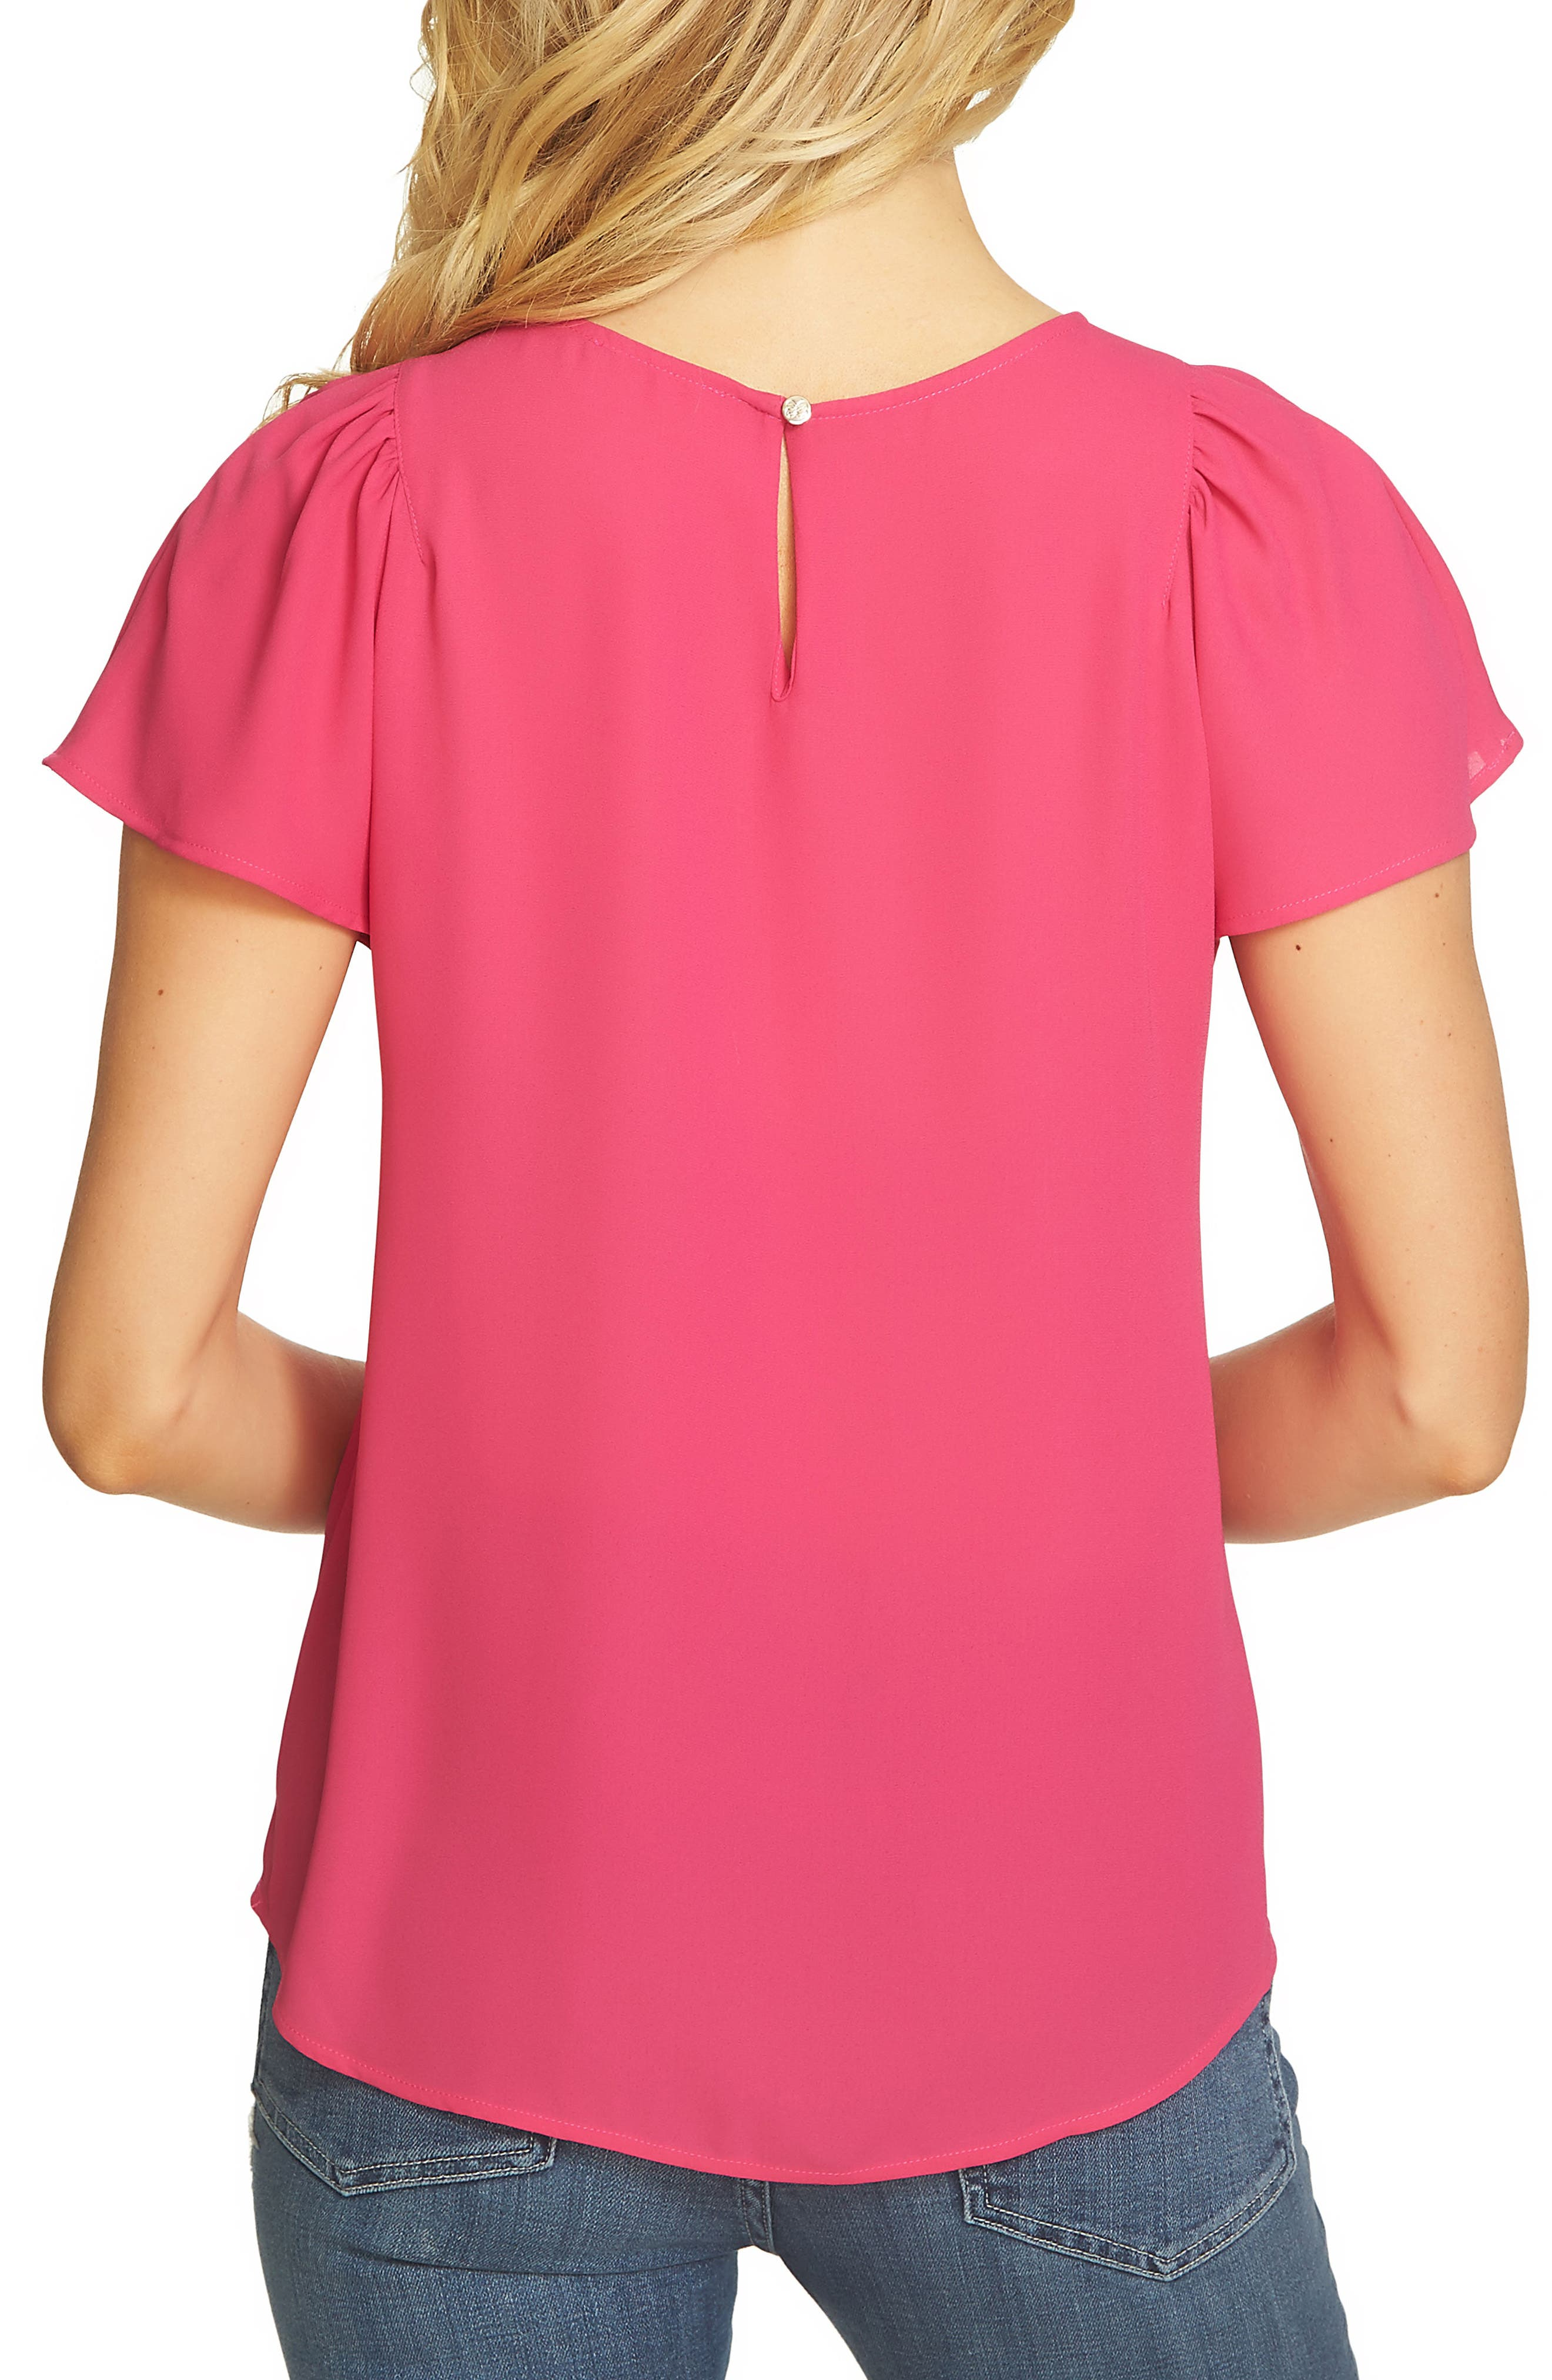 Flutter Sleeve Blouse,                             Alternate thumbnail 2, color,                             Vibrant Cerise